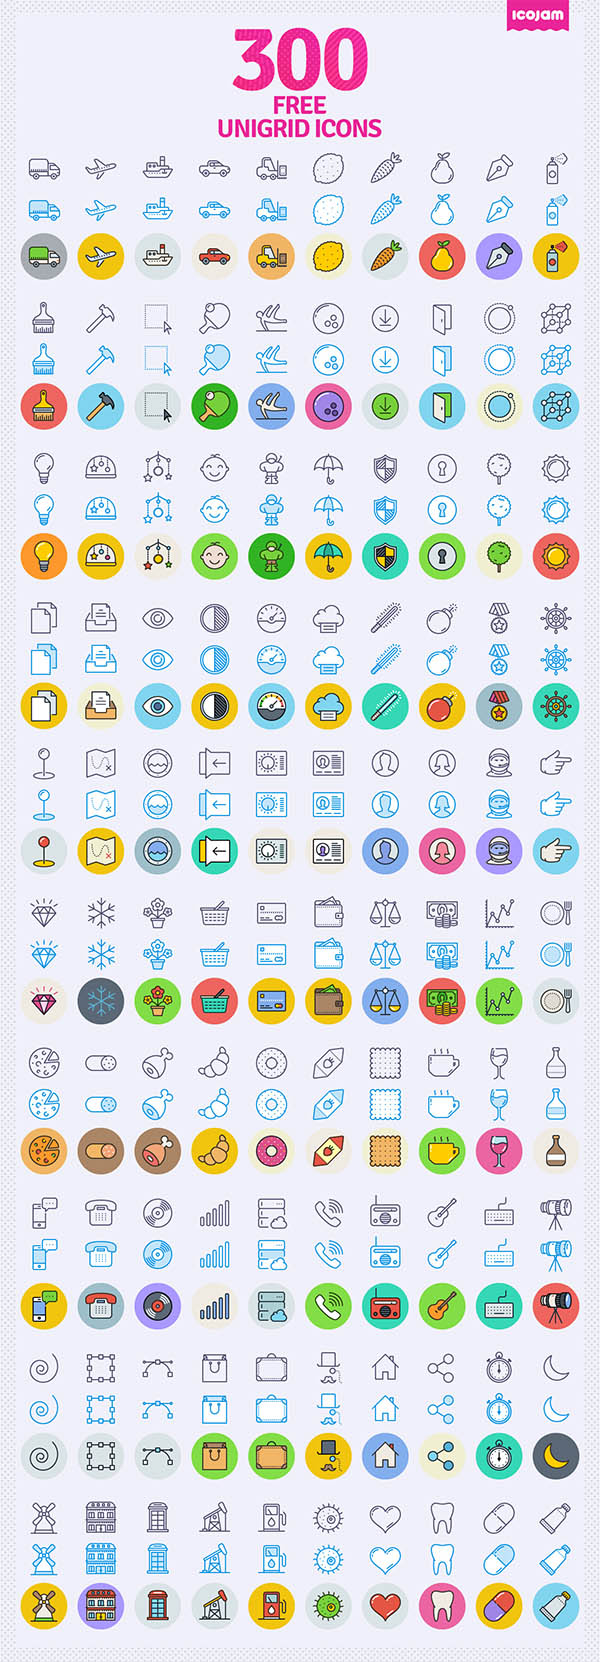 300 Unigrid icons - Free Download